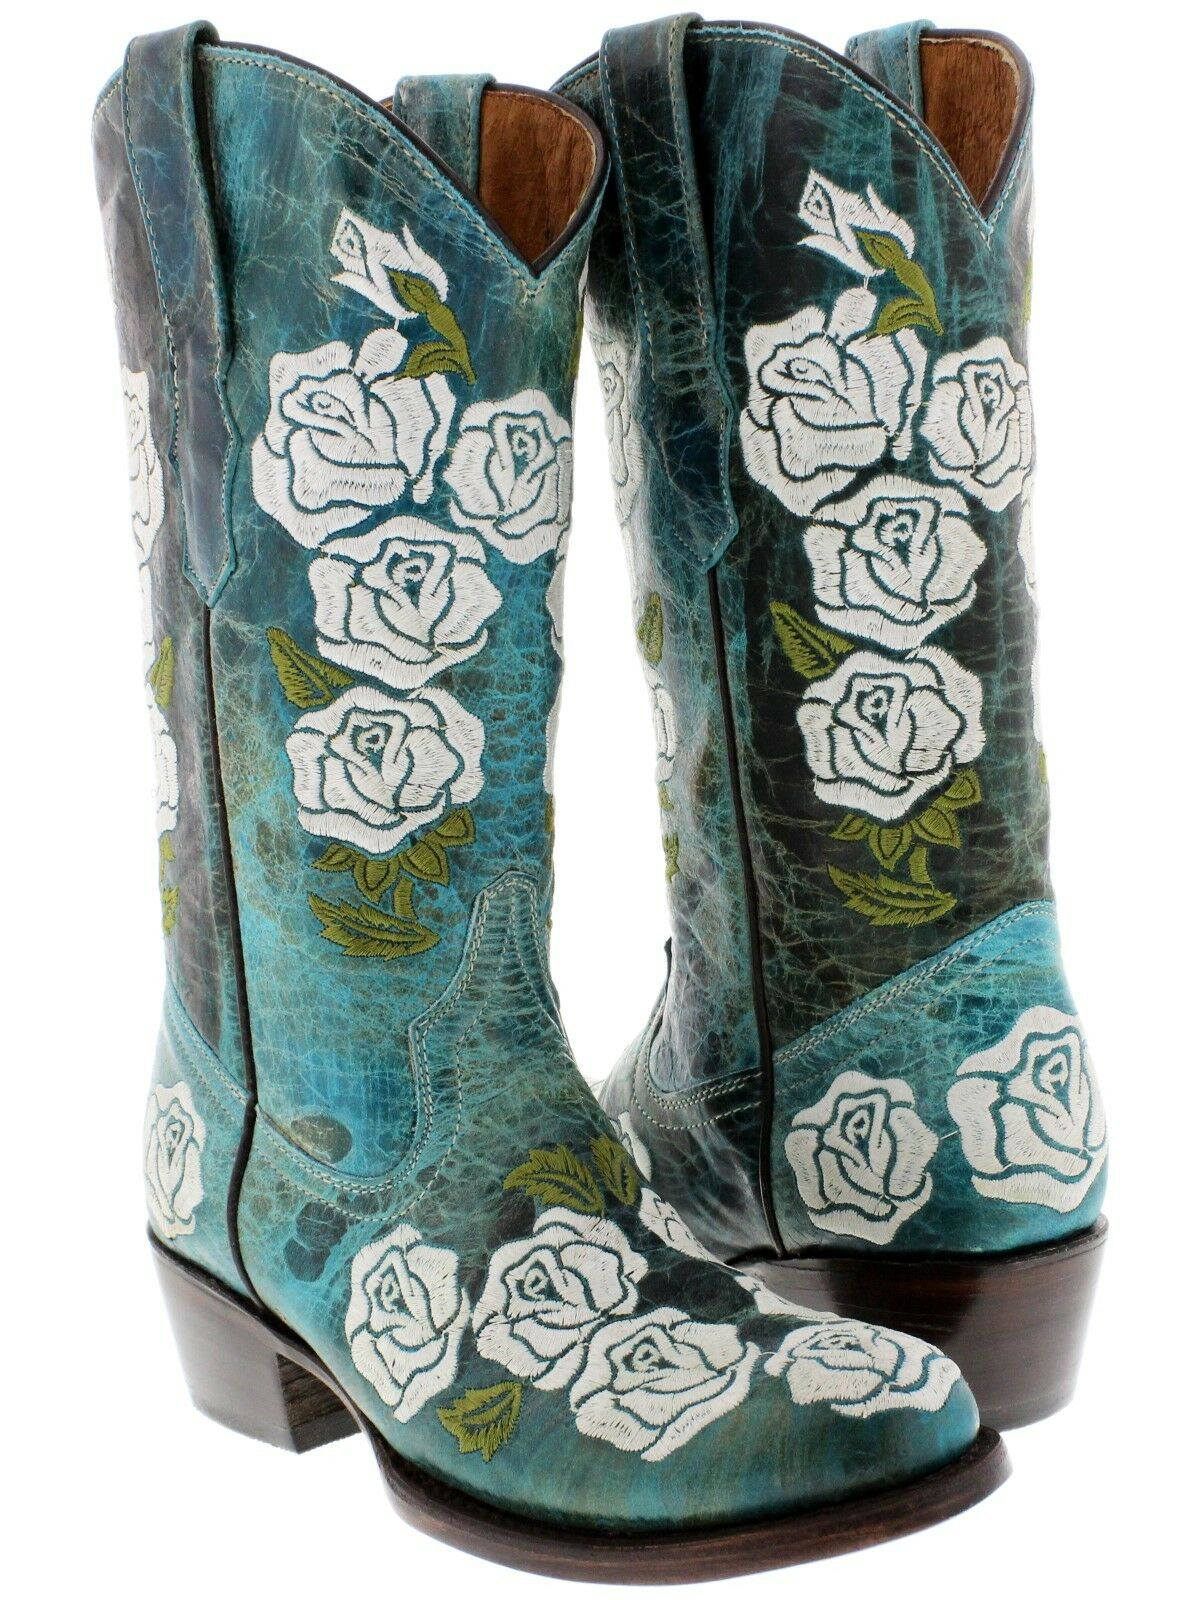 damen Turquoise Distressed Leather Cowgirl Stiefel Floral Rosa Rosa Rosa Embroiderot Round 067fcc